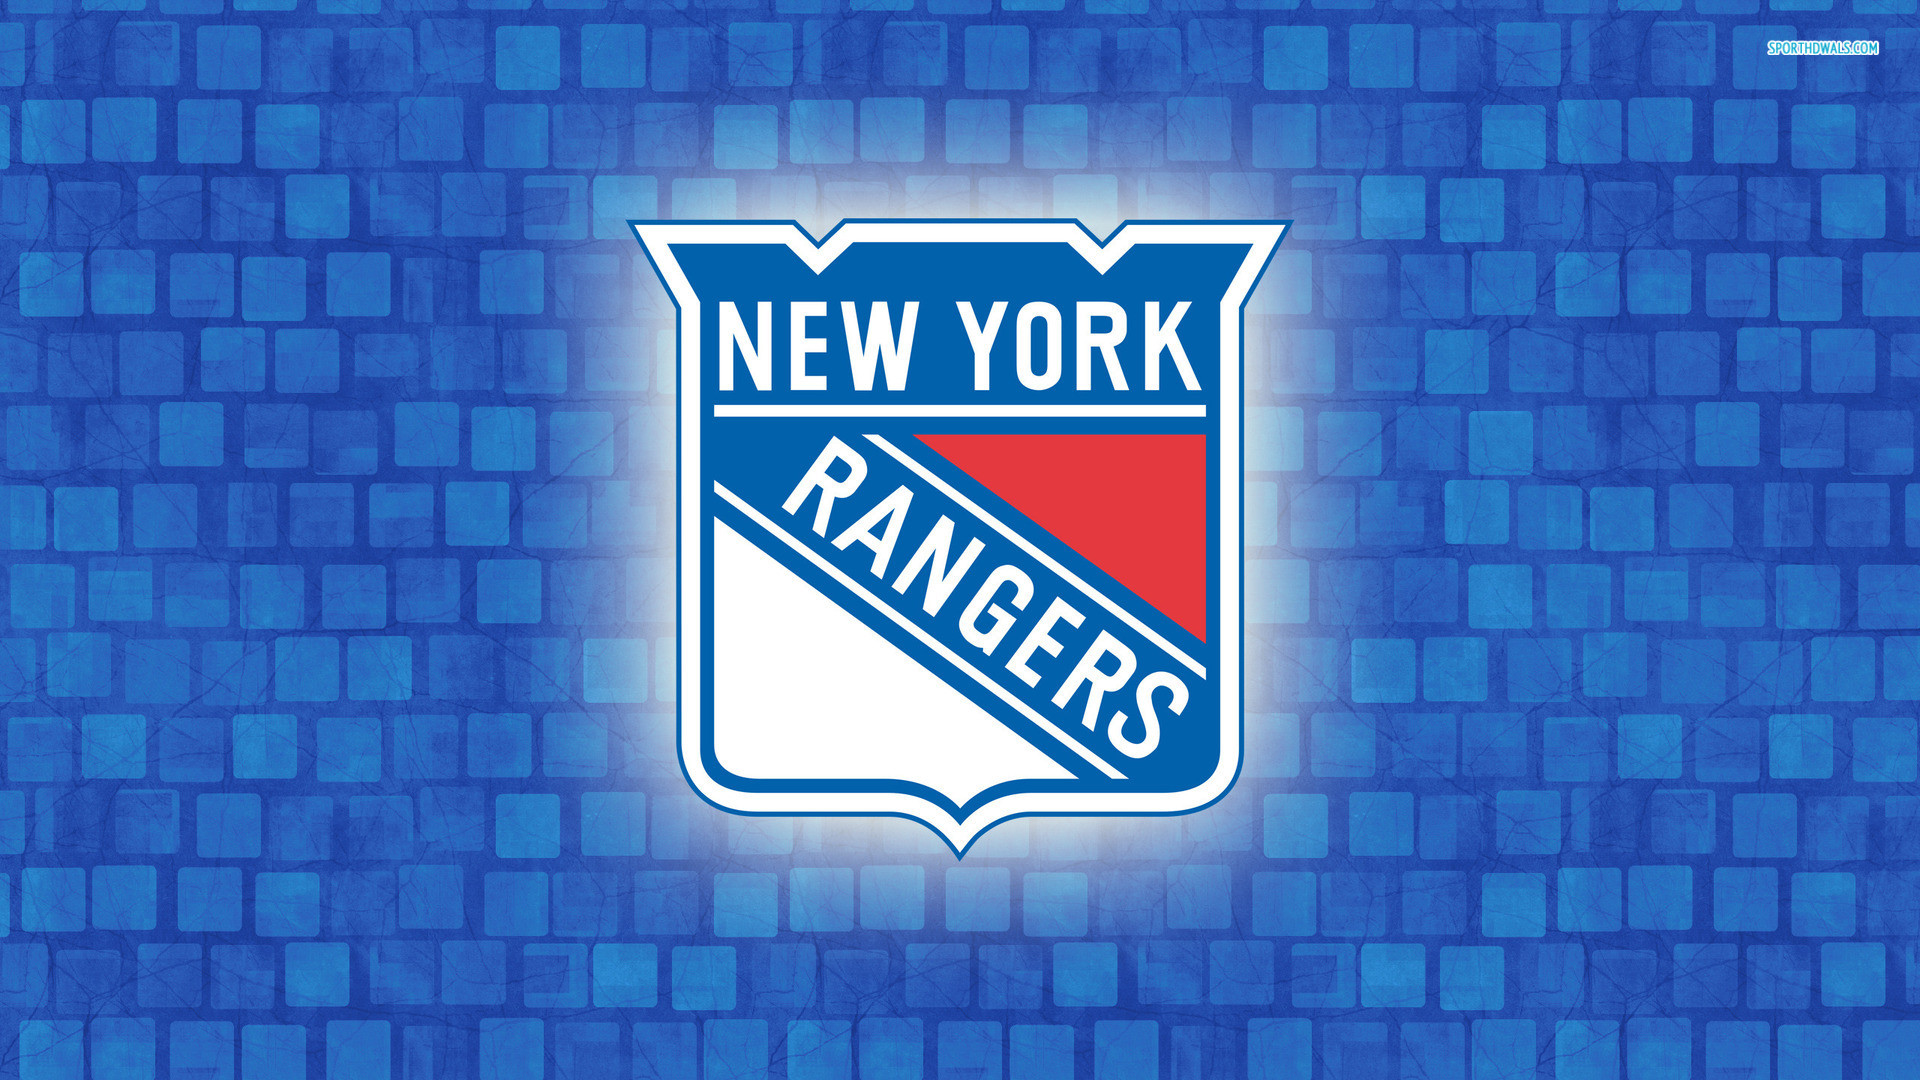 1920x1080 New York Rangers Wallpaper